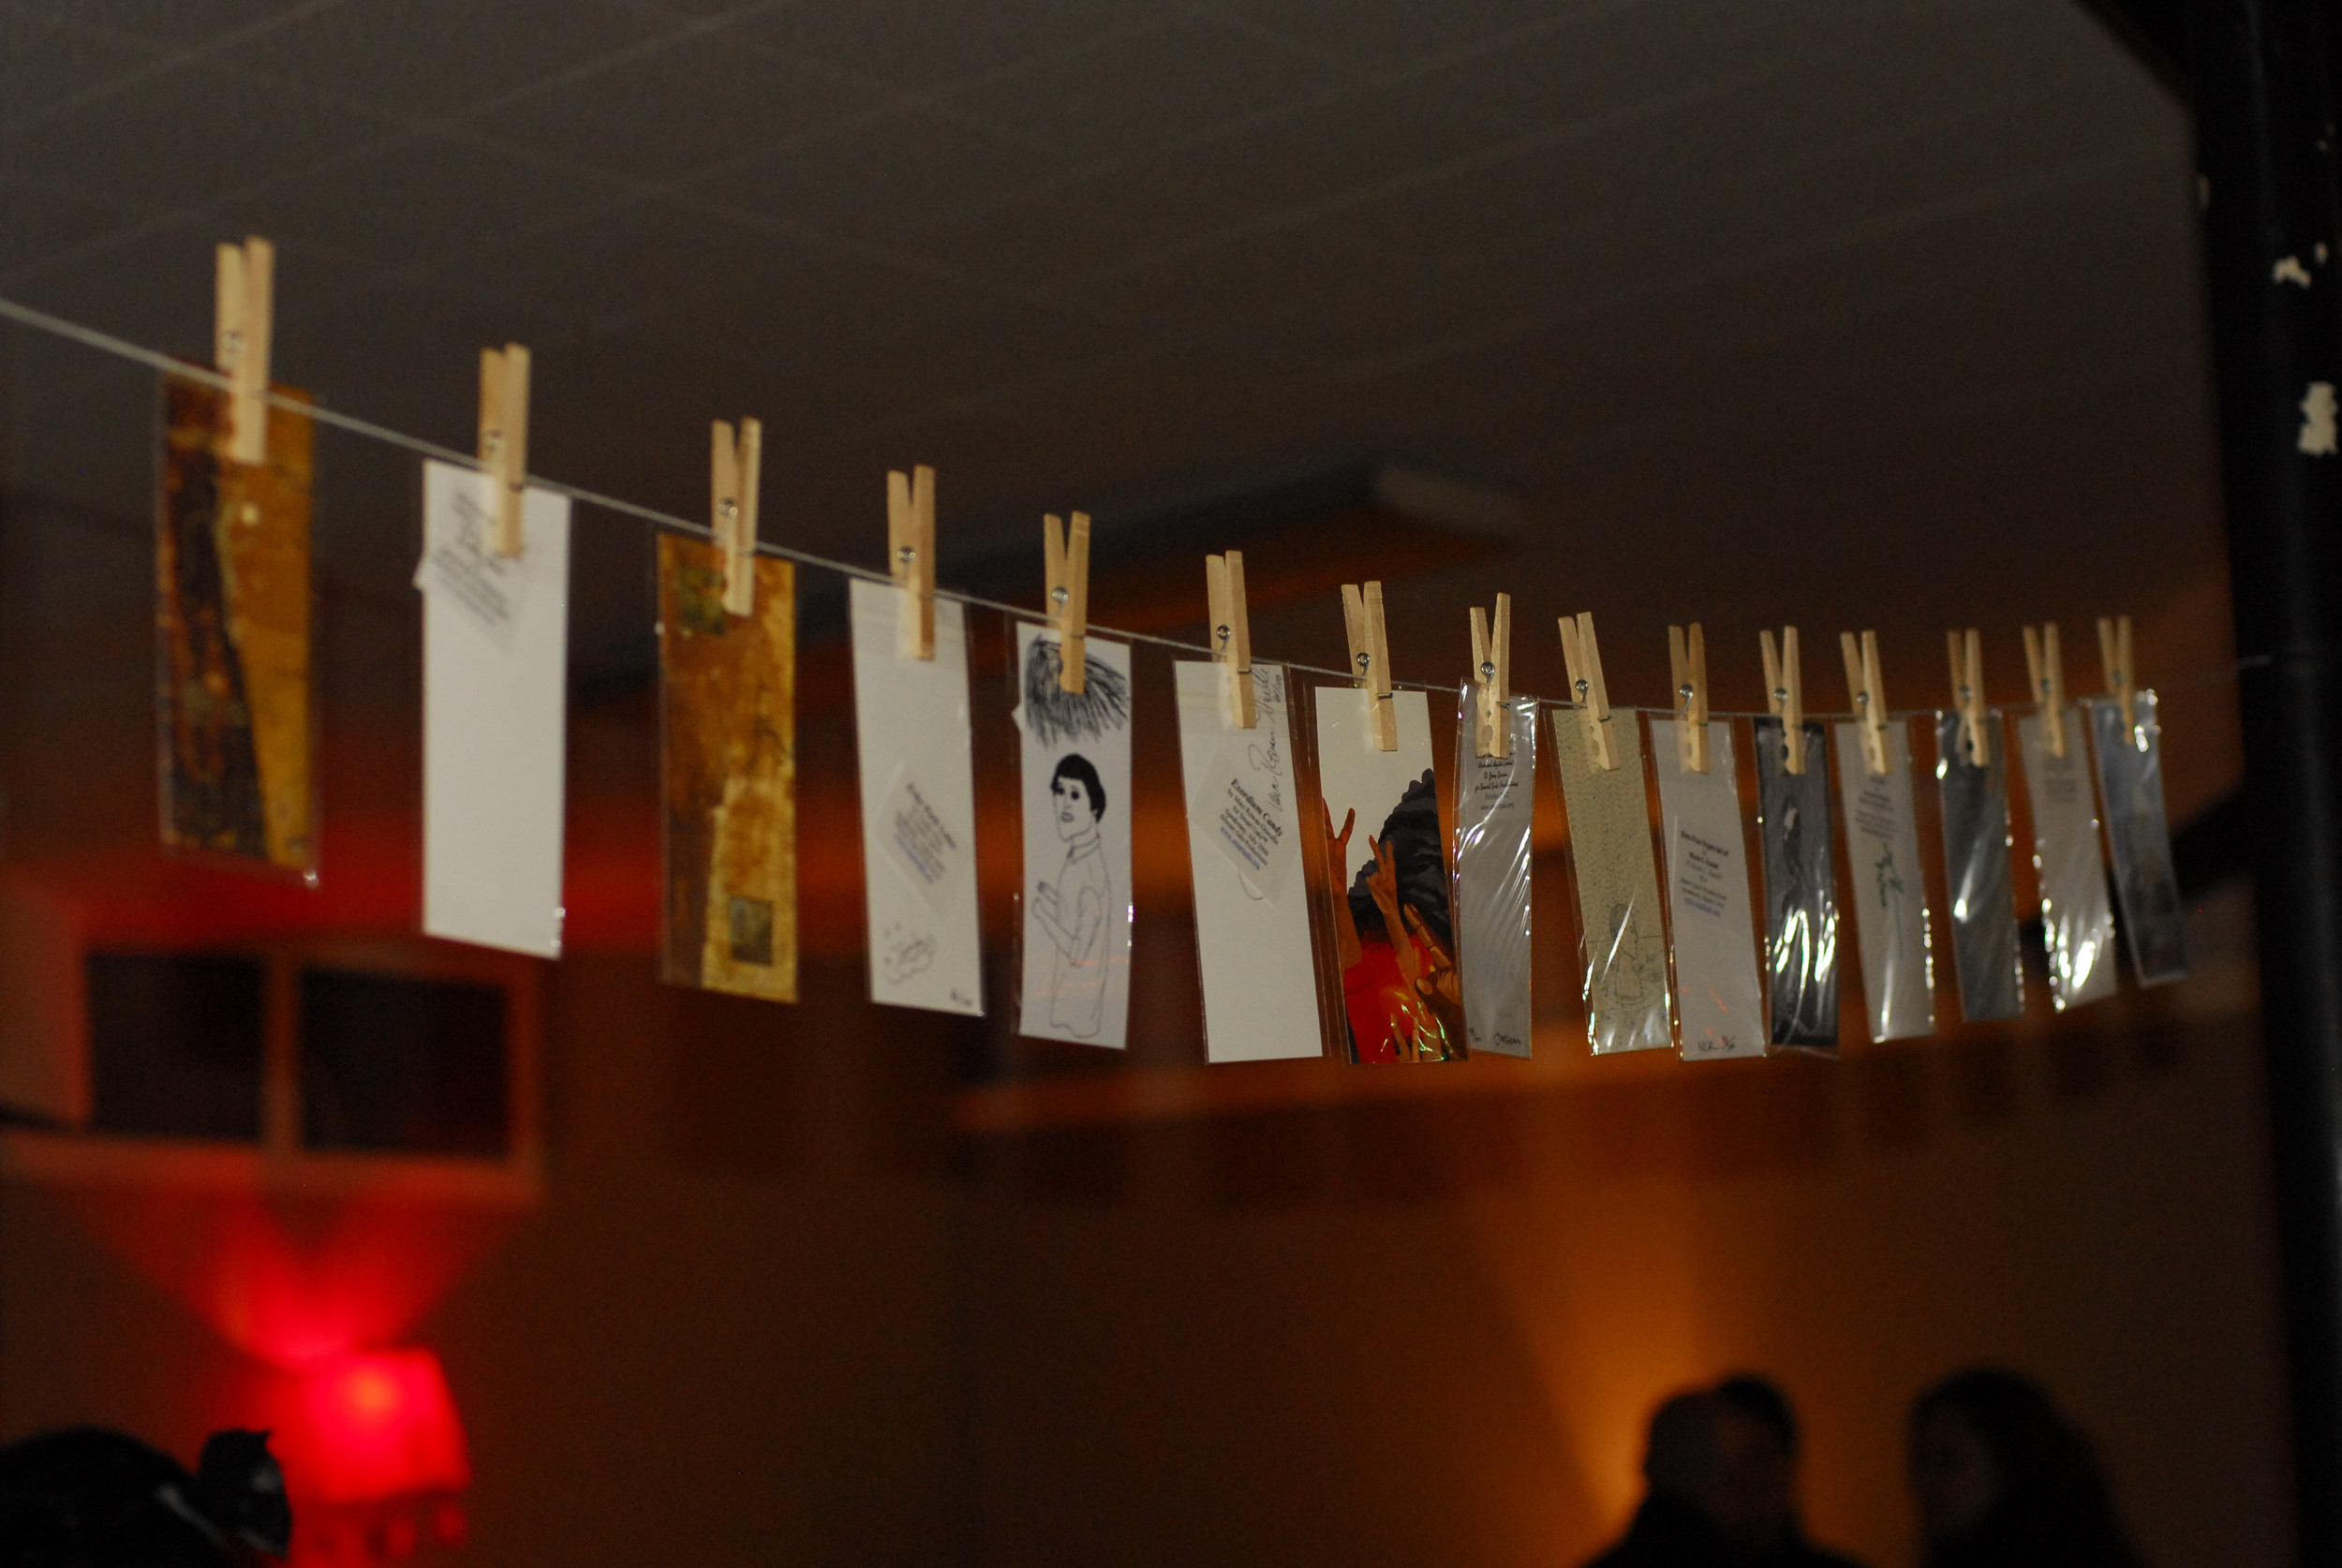 All the bookmarks that were ever made for The Speakeasy.